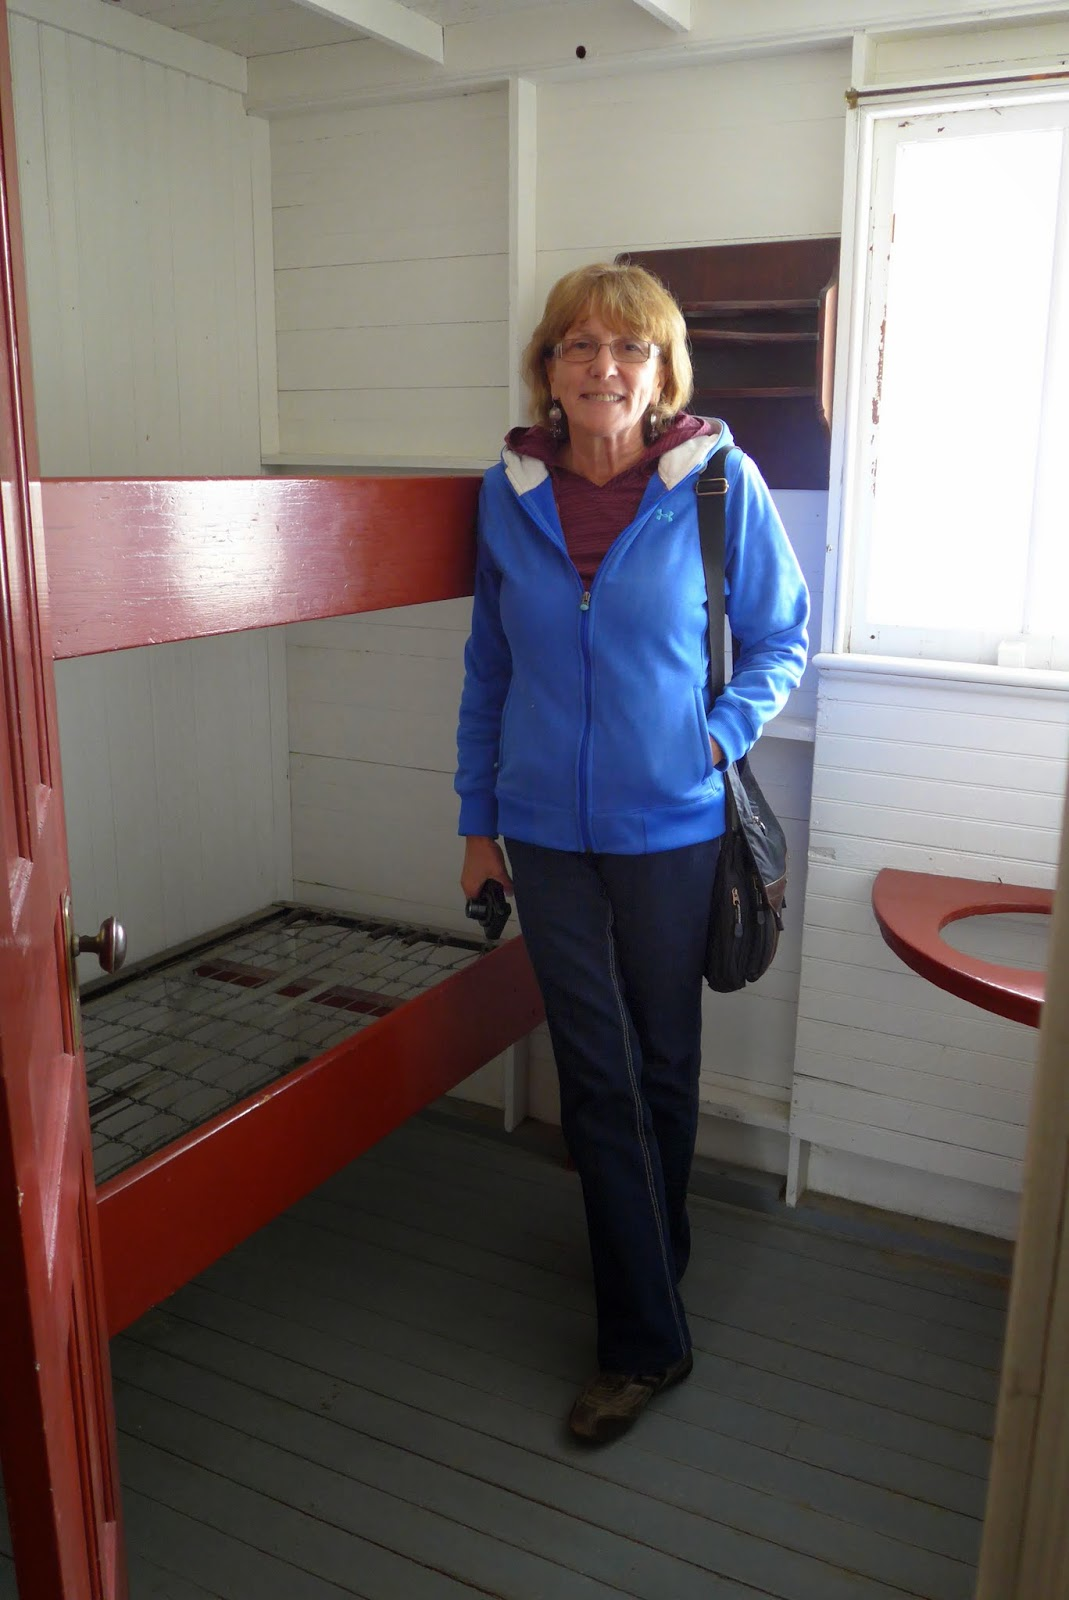 Liz in a state room. Pretty small beds.